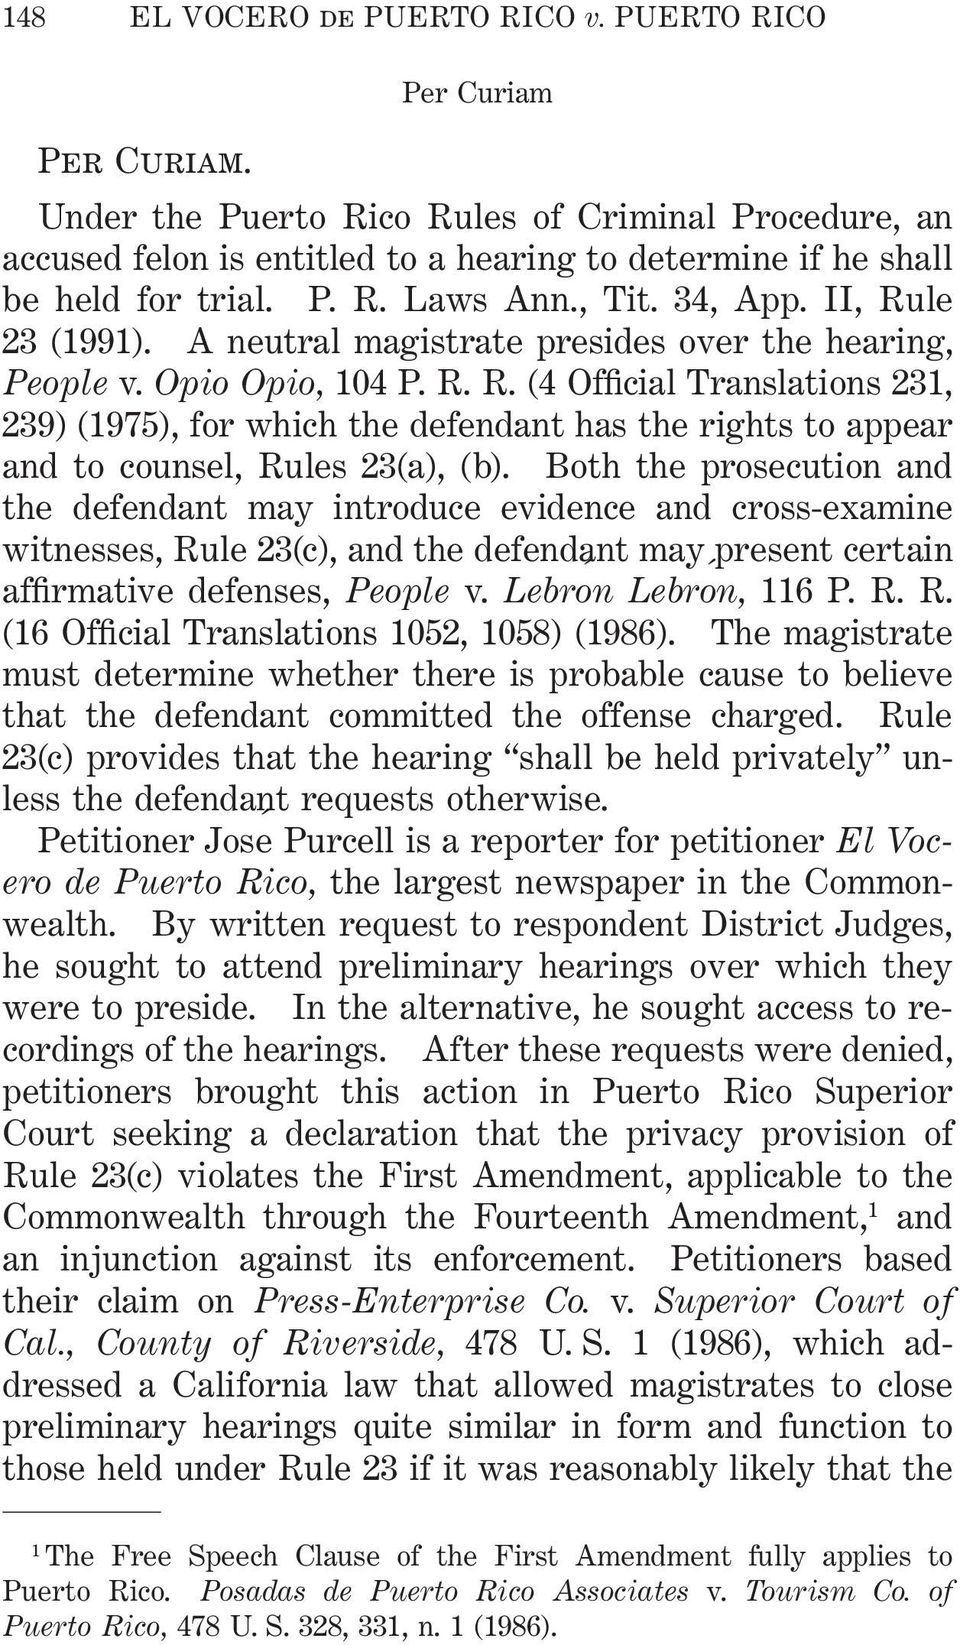 Both the prosecution and the defendant may introduce evidence and cross-examine witnesses, Rule 23(c), and the defendant may present certain affirmative defenses, People v. Lebrón Lebrón, 116 P. R. R. (16 Official Translations 1052, 1058) (1986).